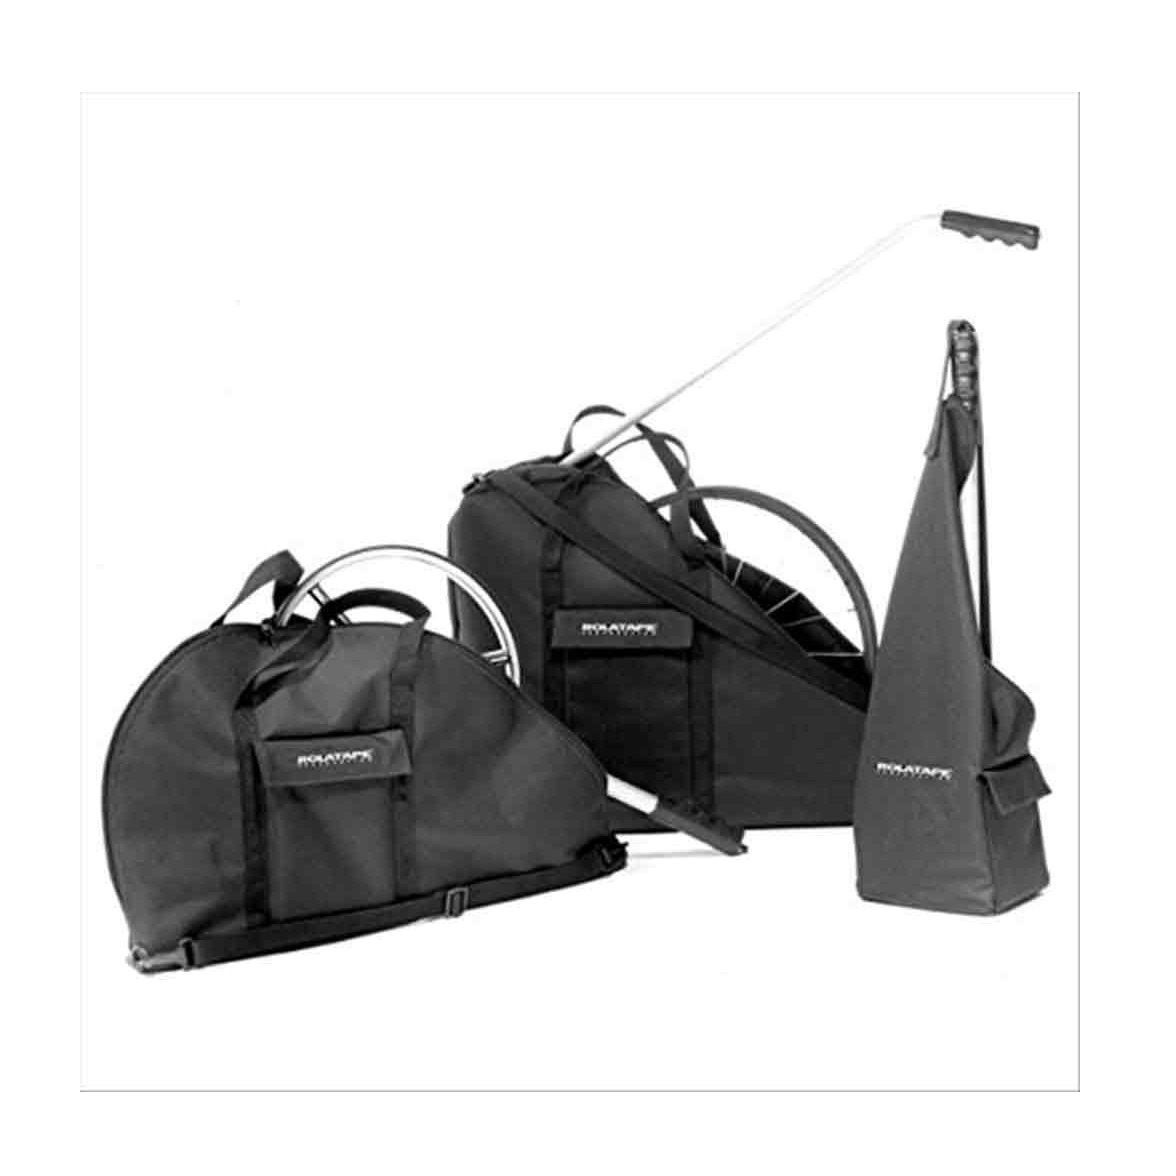 NEW Rolatape 32-30CCB Carry Case for 30/300 Series